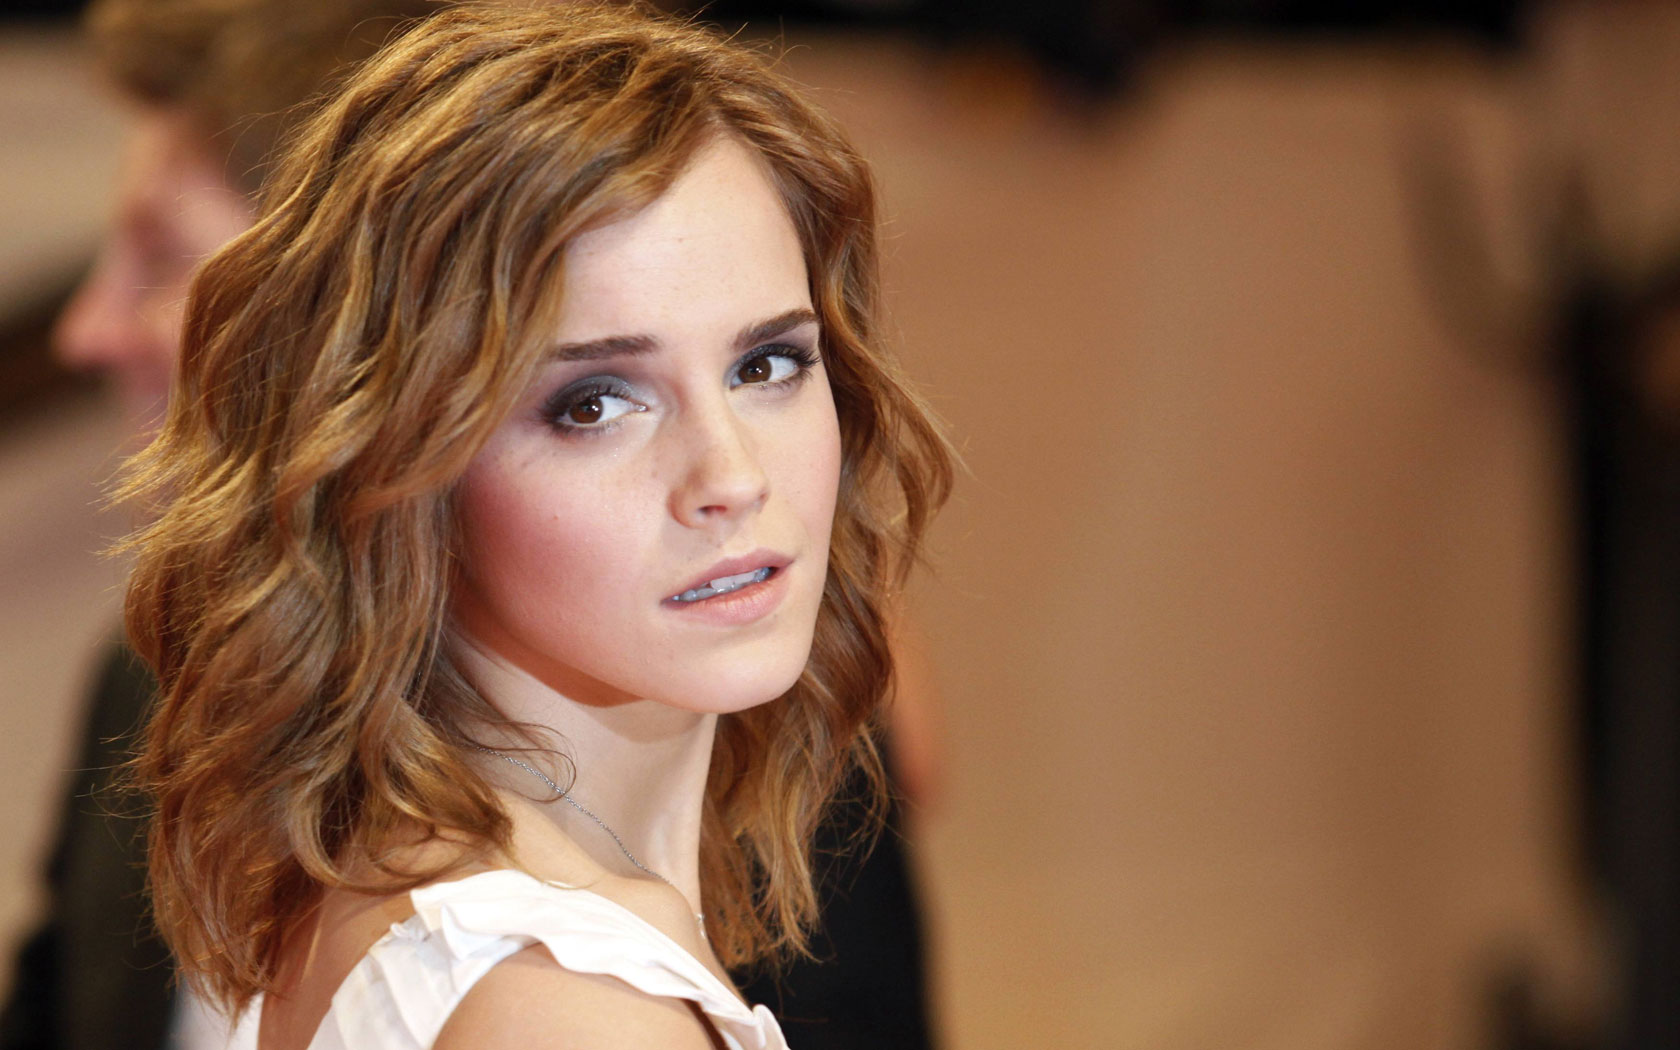 emma watson public enemy no. 1 ? | screen comment